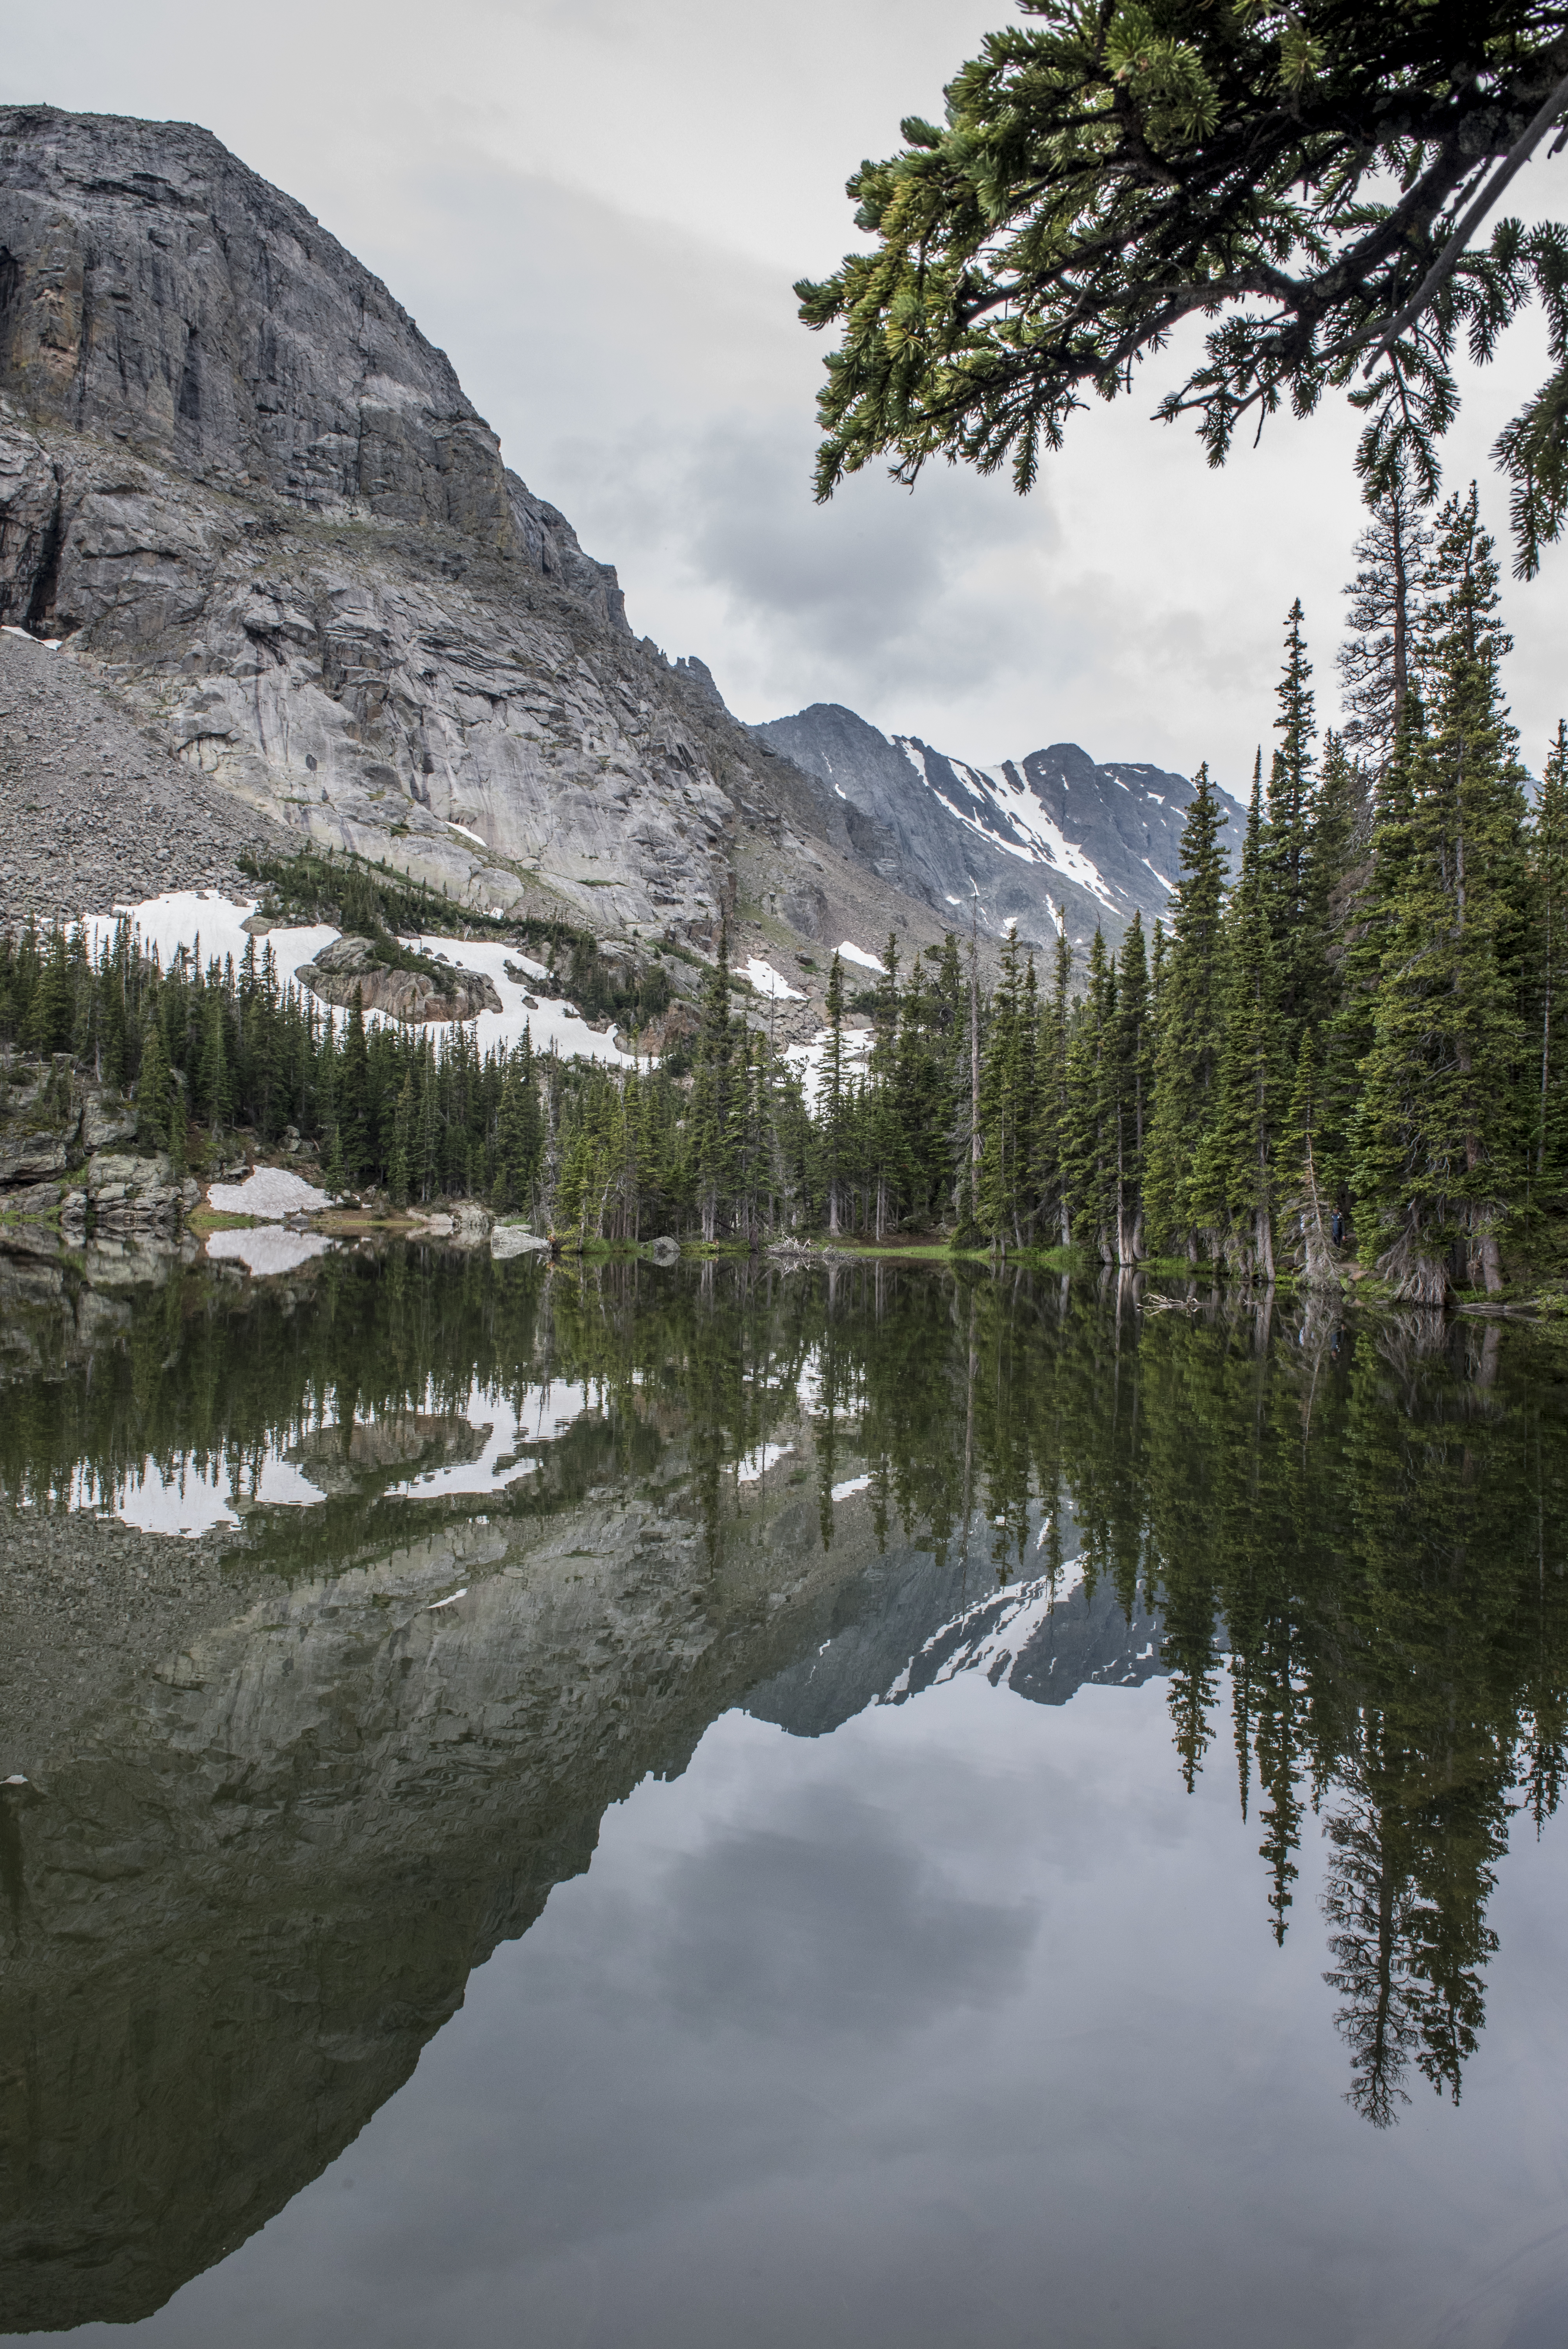 Rocky cliffs are reflected in a small alpine lake in Loch Vale, on the trail to Sky Pond, Rocky Mountain National Park, Colorado.